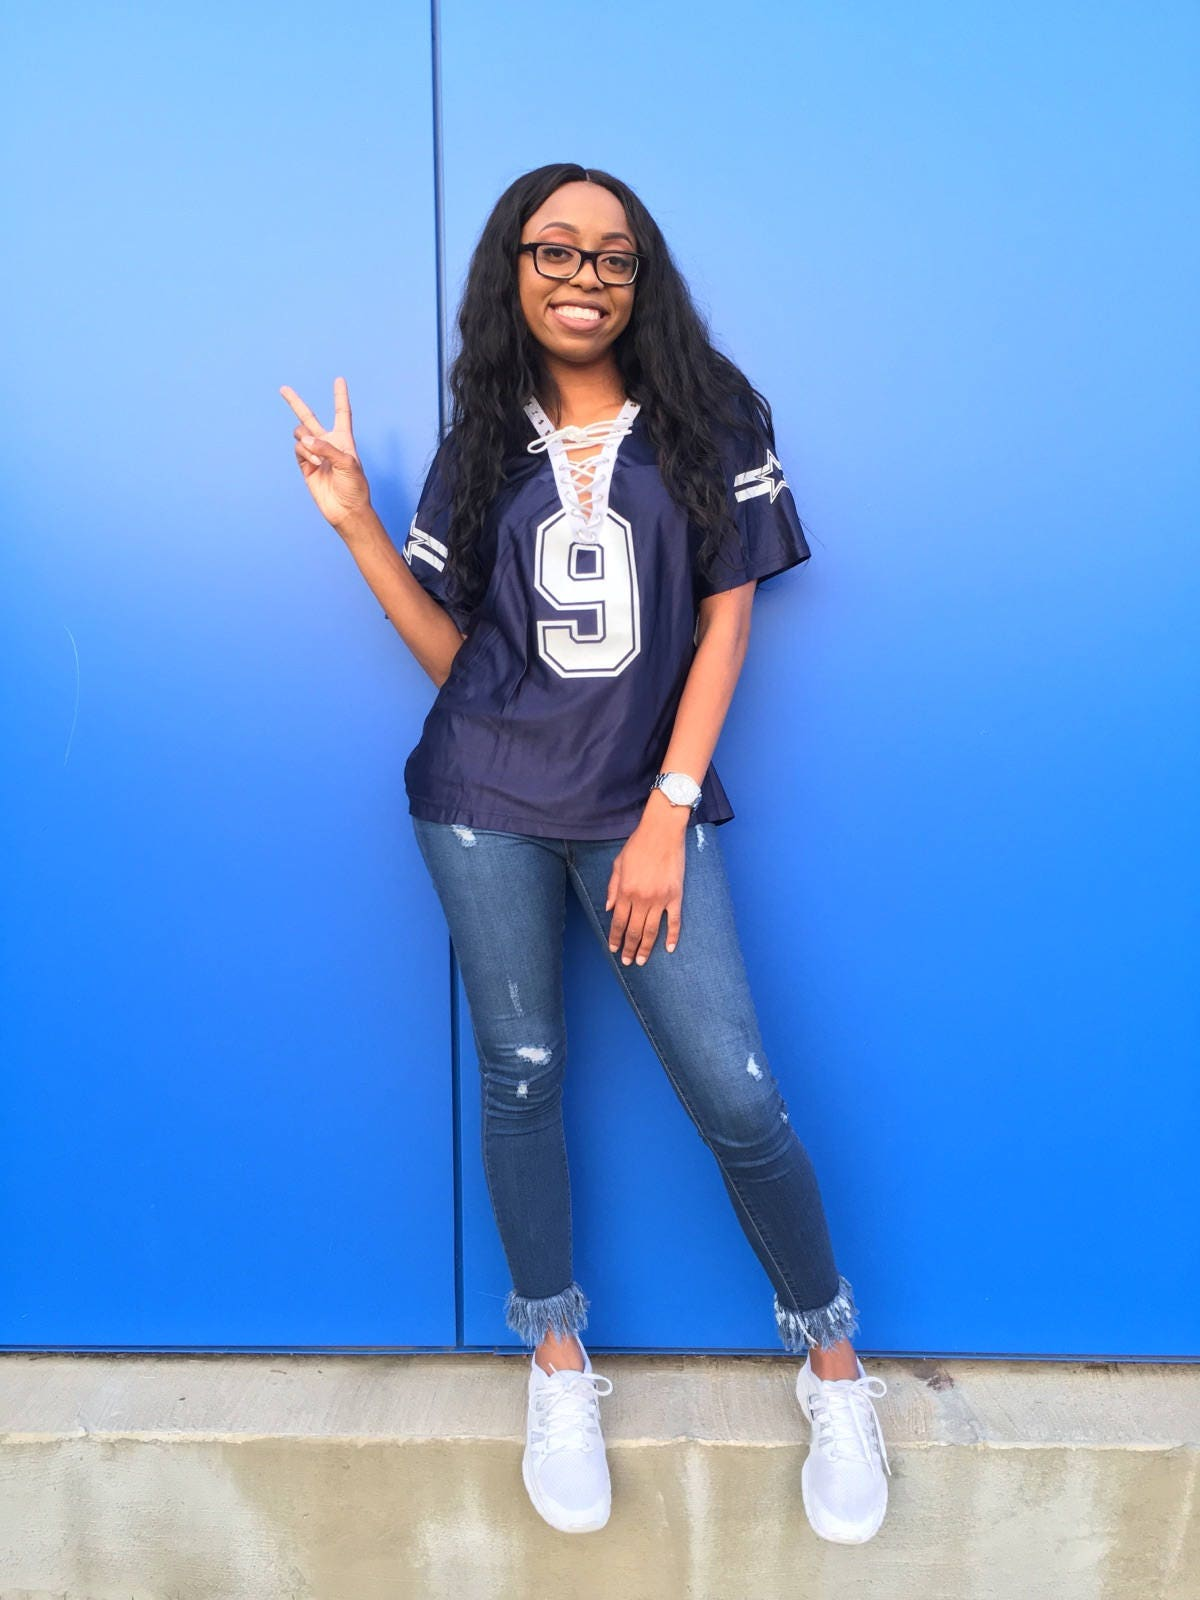 bbaac269f9c LIMITED QUANTITY DALLAS COWBOYS NFL LACE UP JERSEY ...